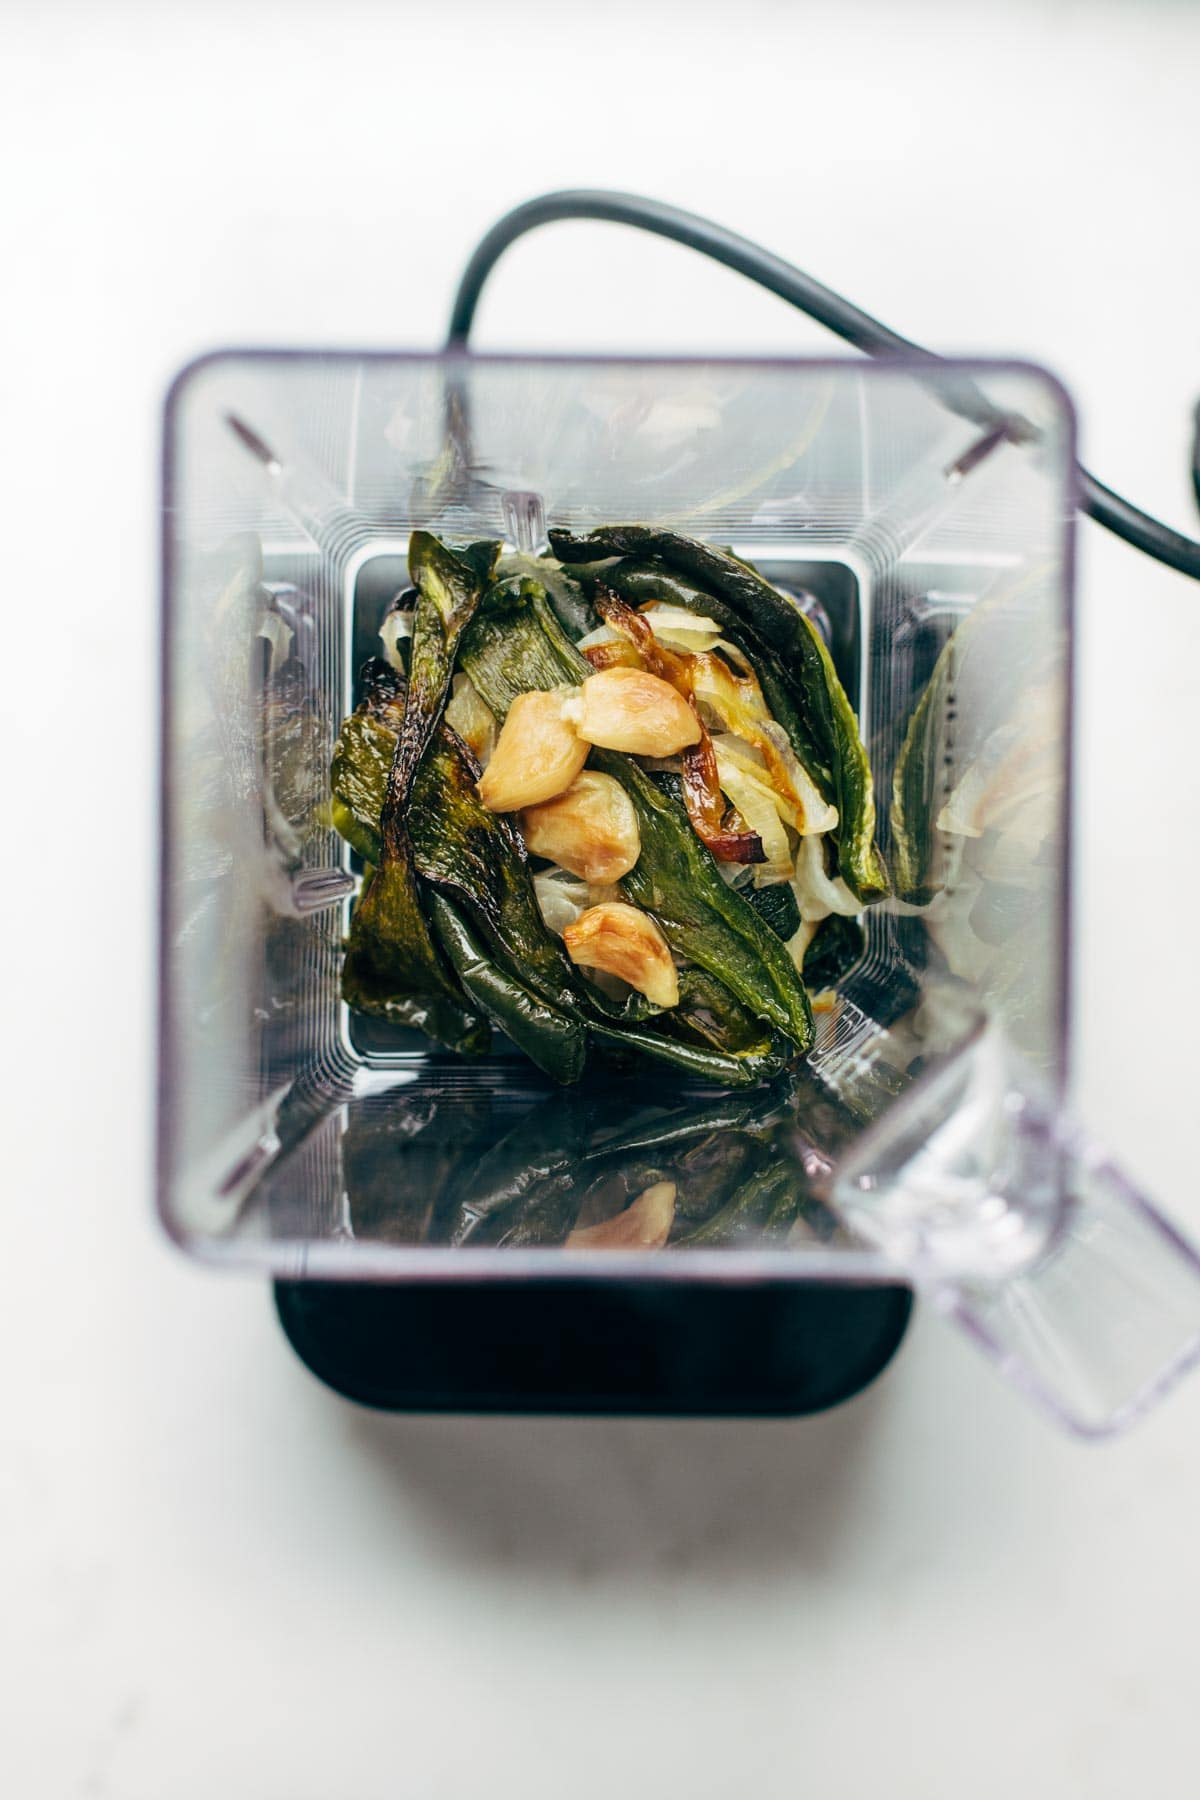 blender of spinach with onions and garlic